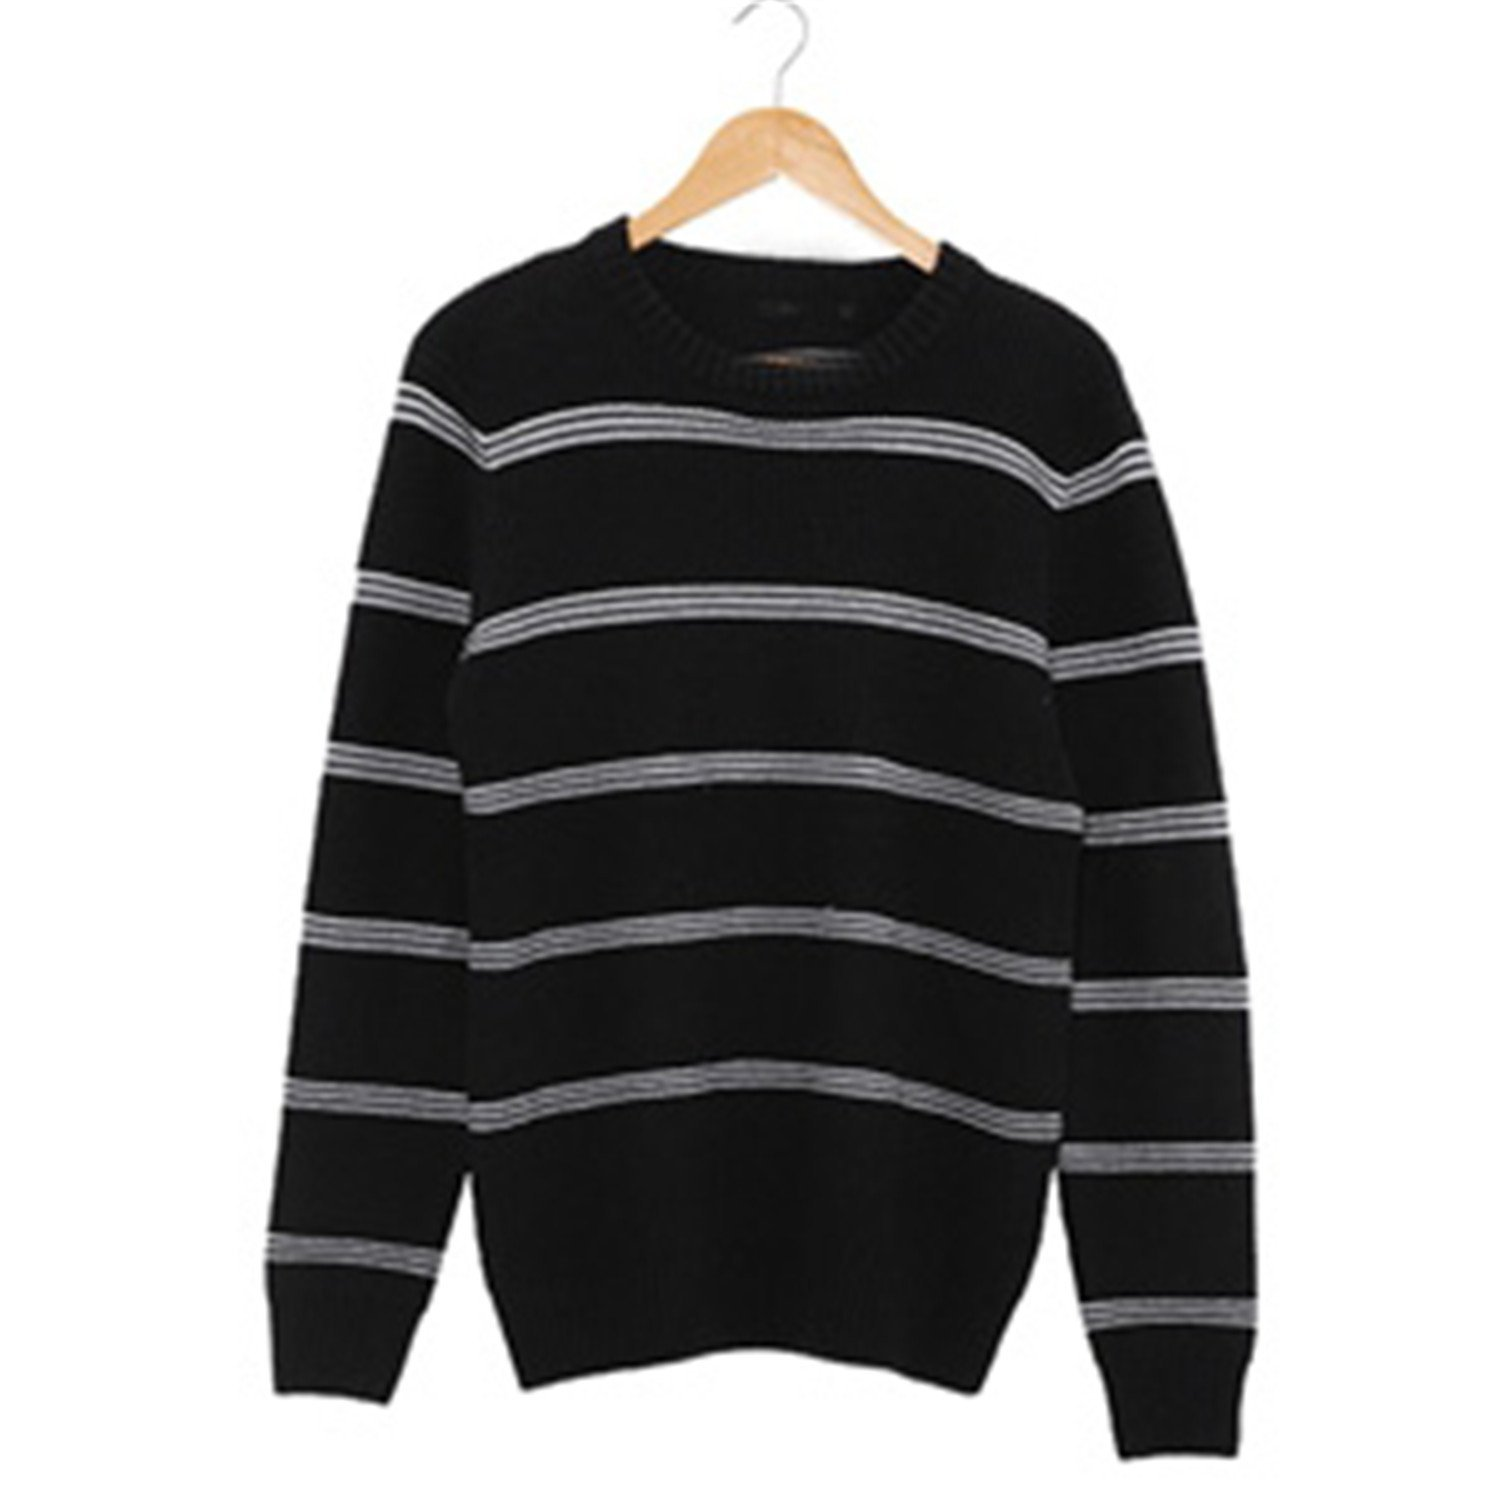 aca0fc3e715 Get Quotations · B dressy Handsome and Silm Men Sweaters Fashion Style  Patchwork Knitted Quality Pullover Men O-